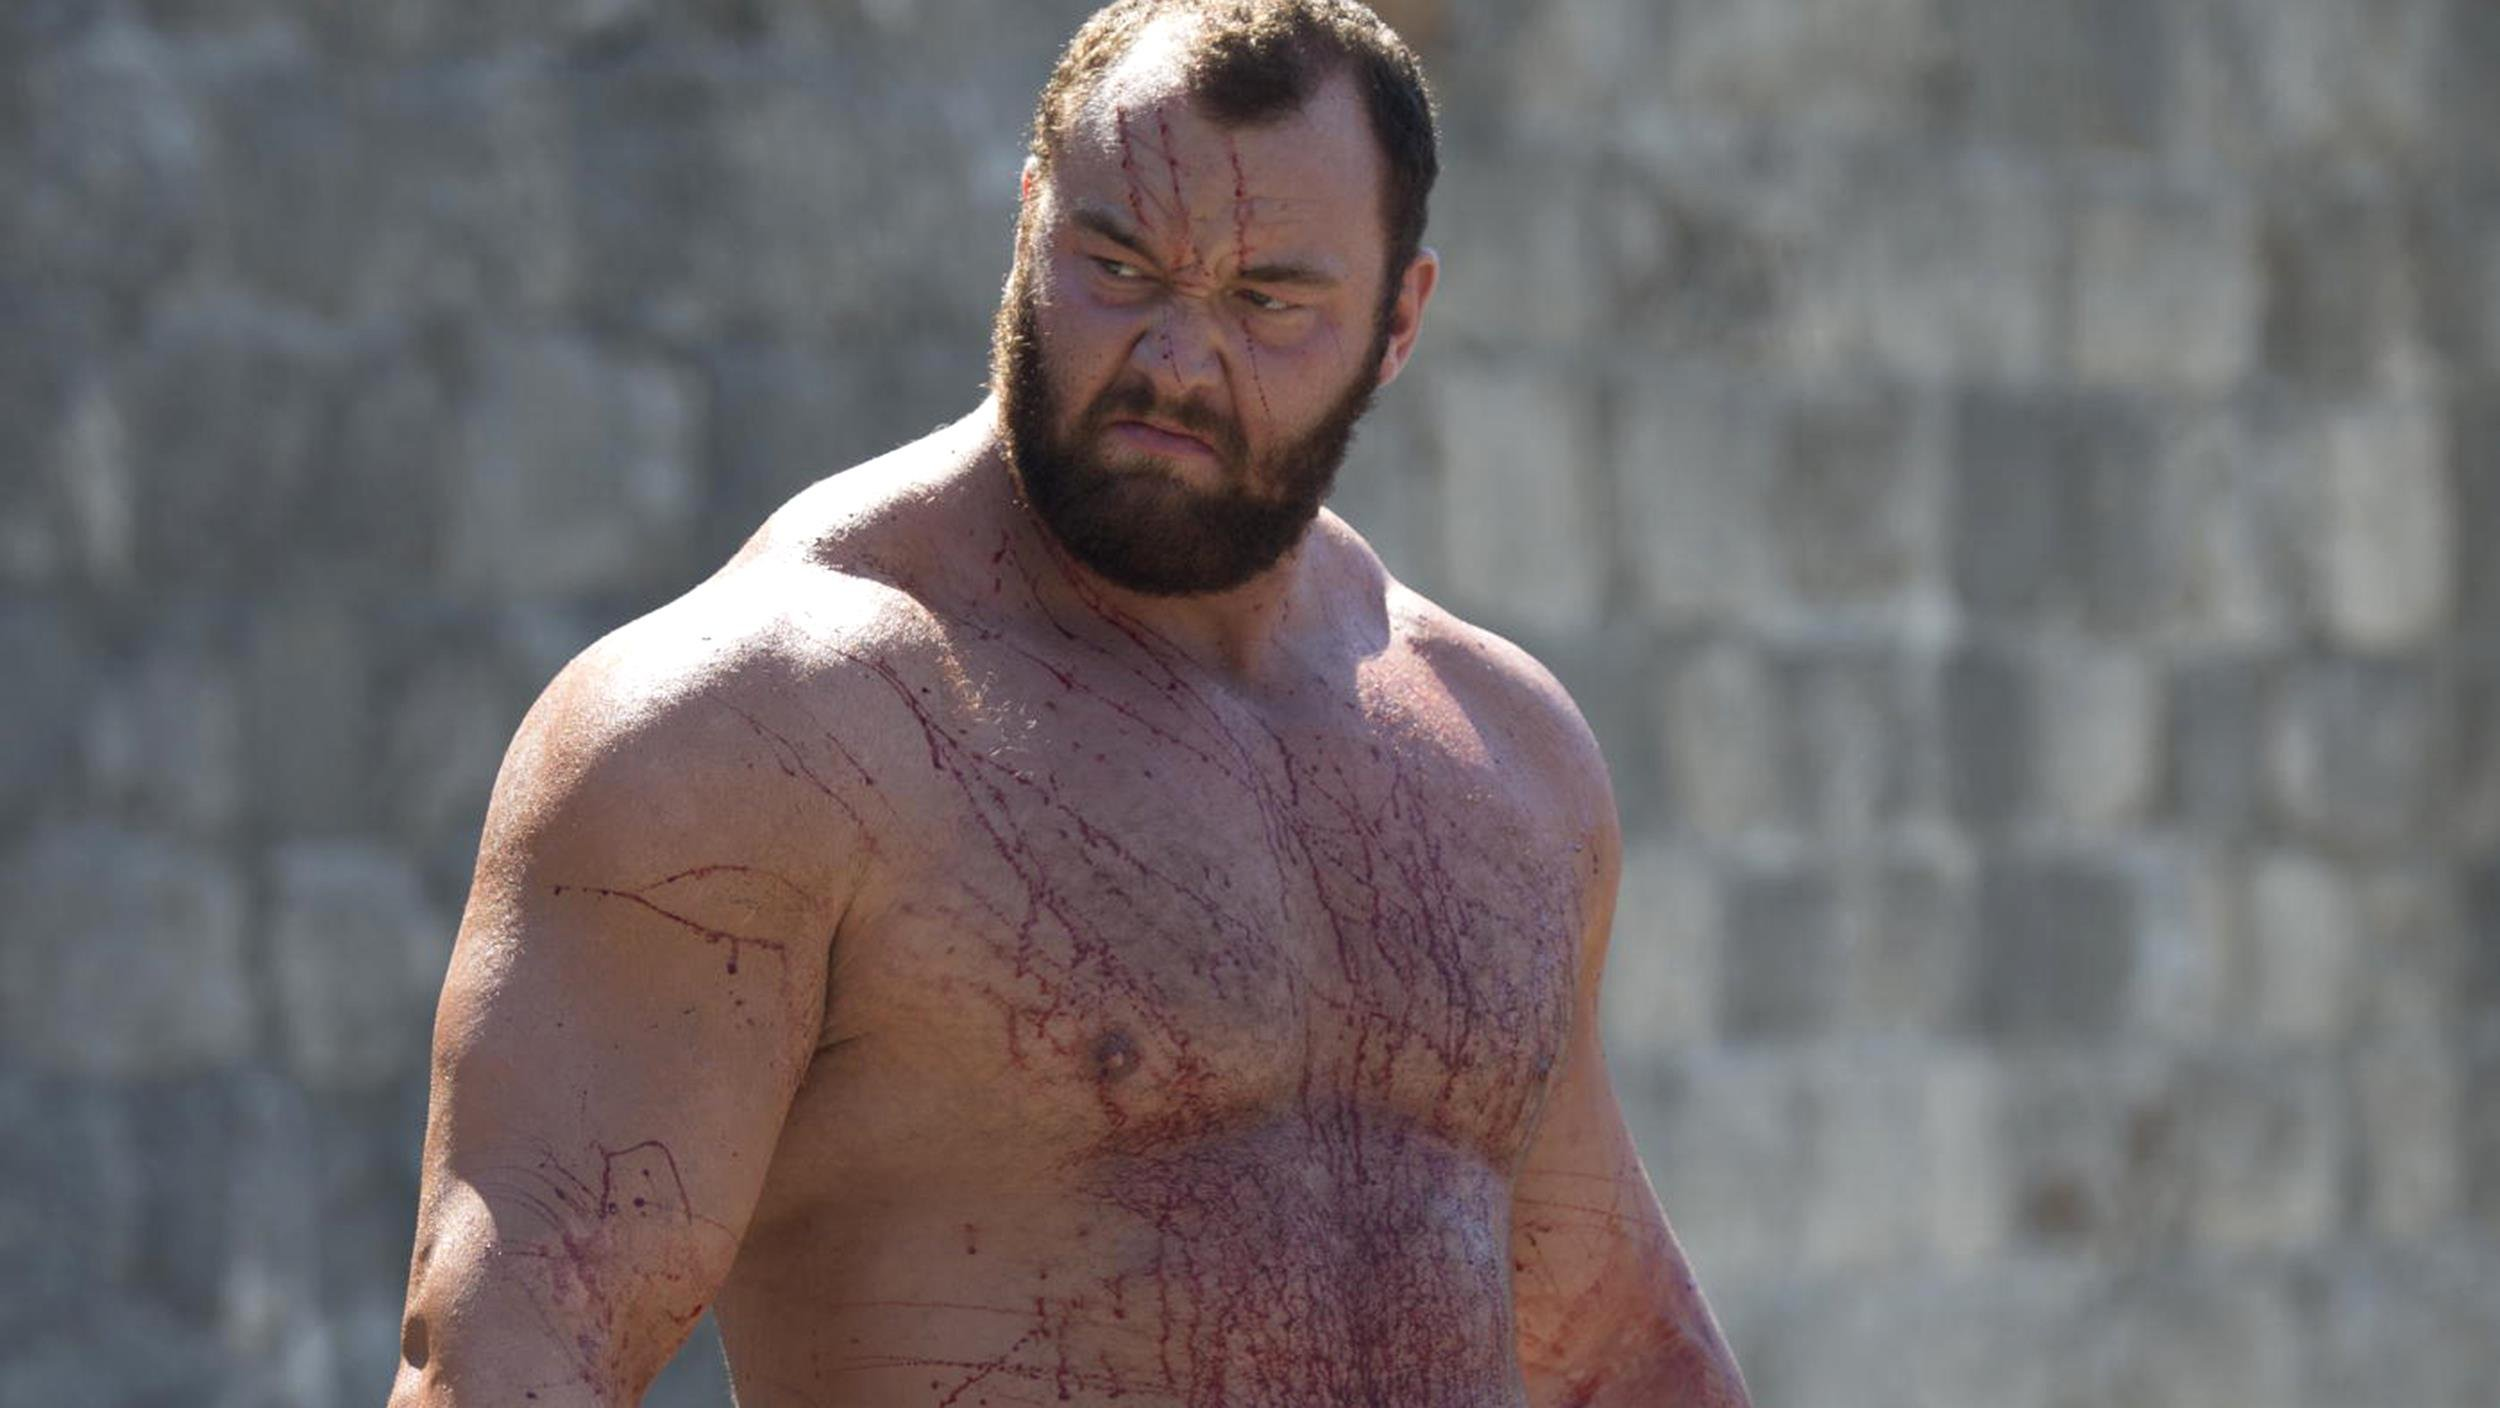 Here's what The Mountain from Game Of Thrones used to look like before he bulked up credit: HBO